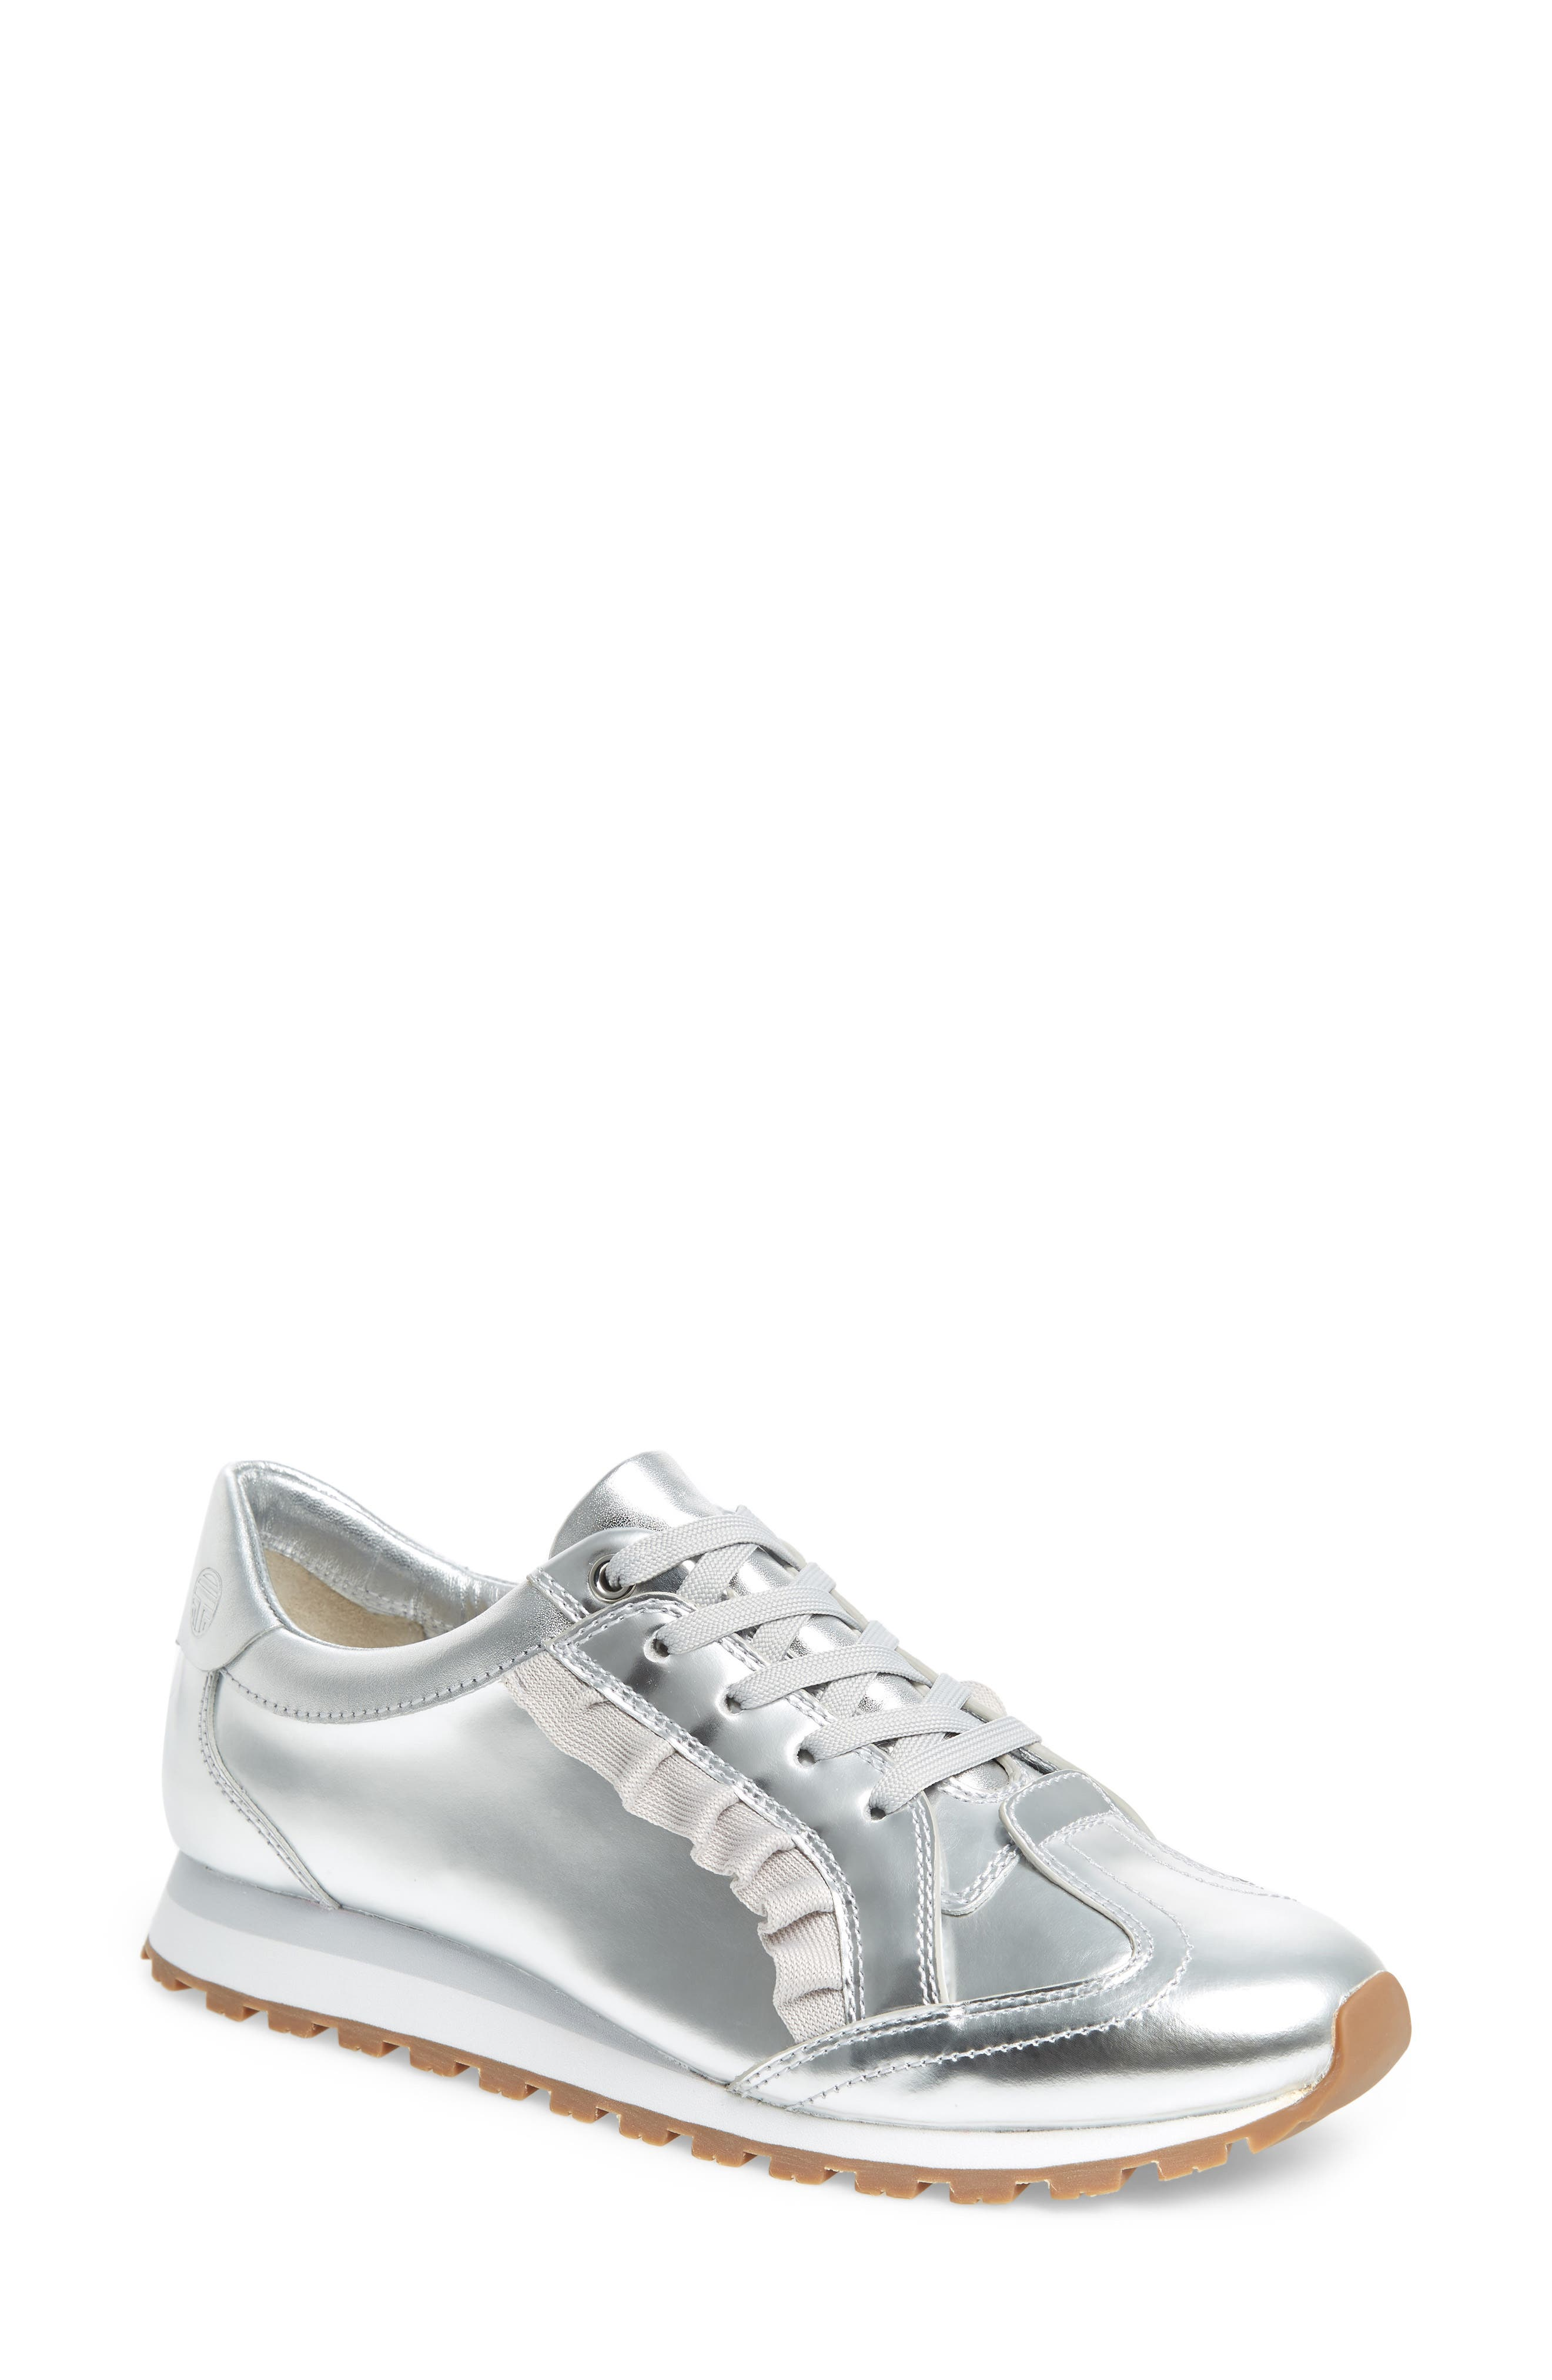 TORY SPORT,                             Ruffle Sneaker,                             Main thumbnail 1, color,                             SILVER/ GRAY